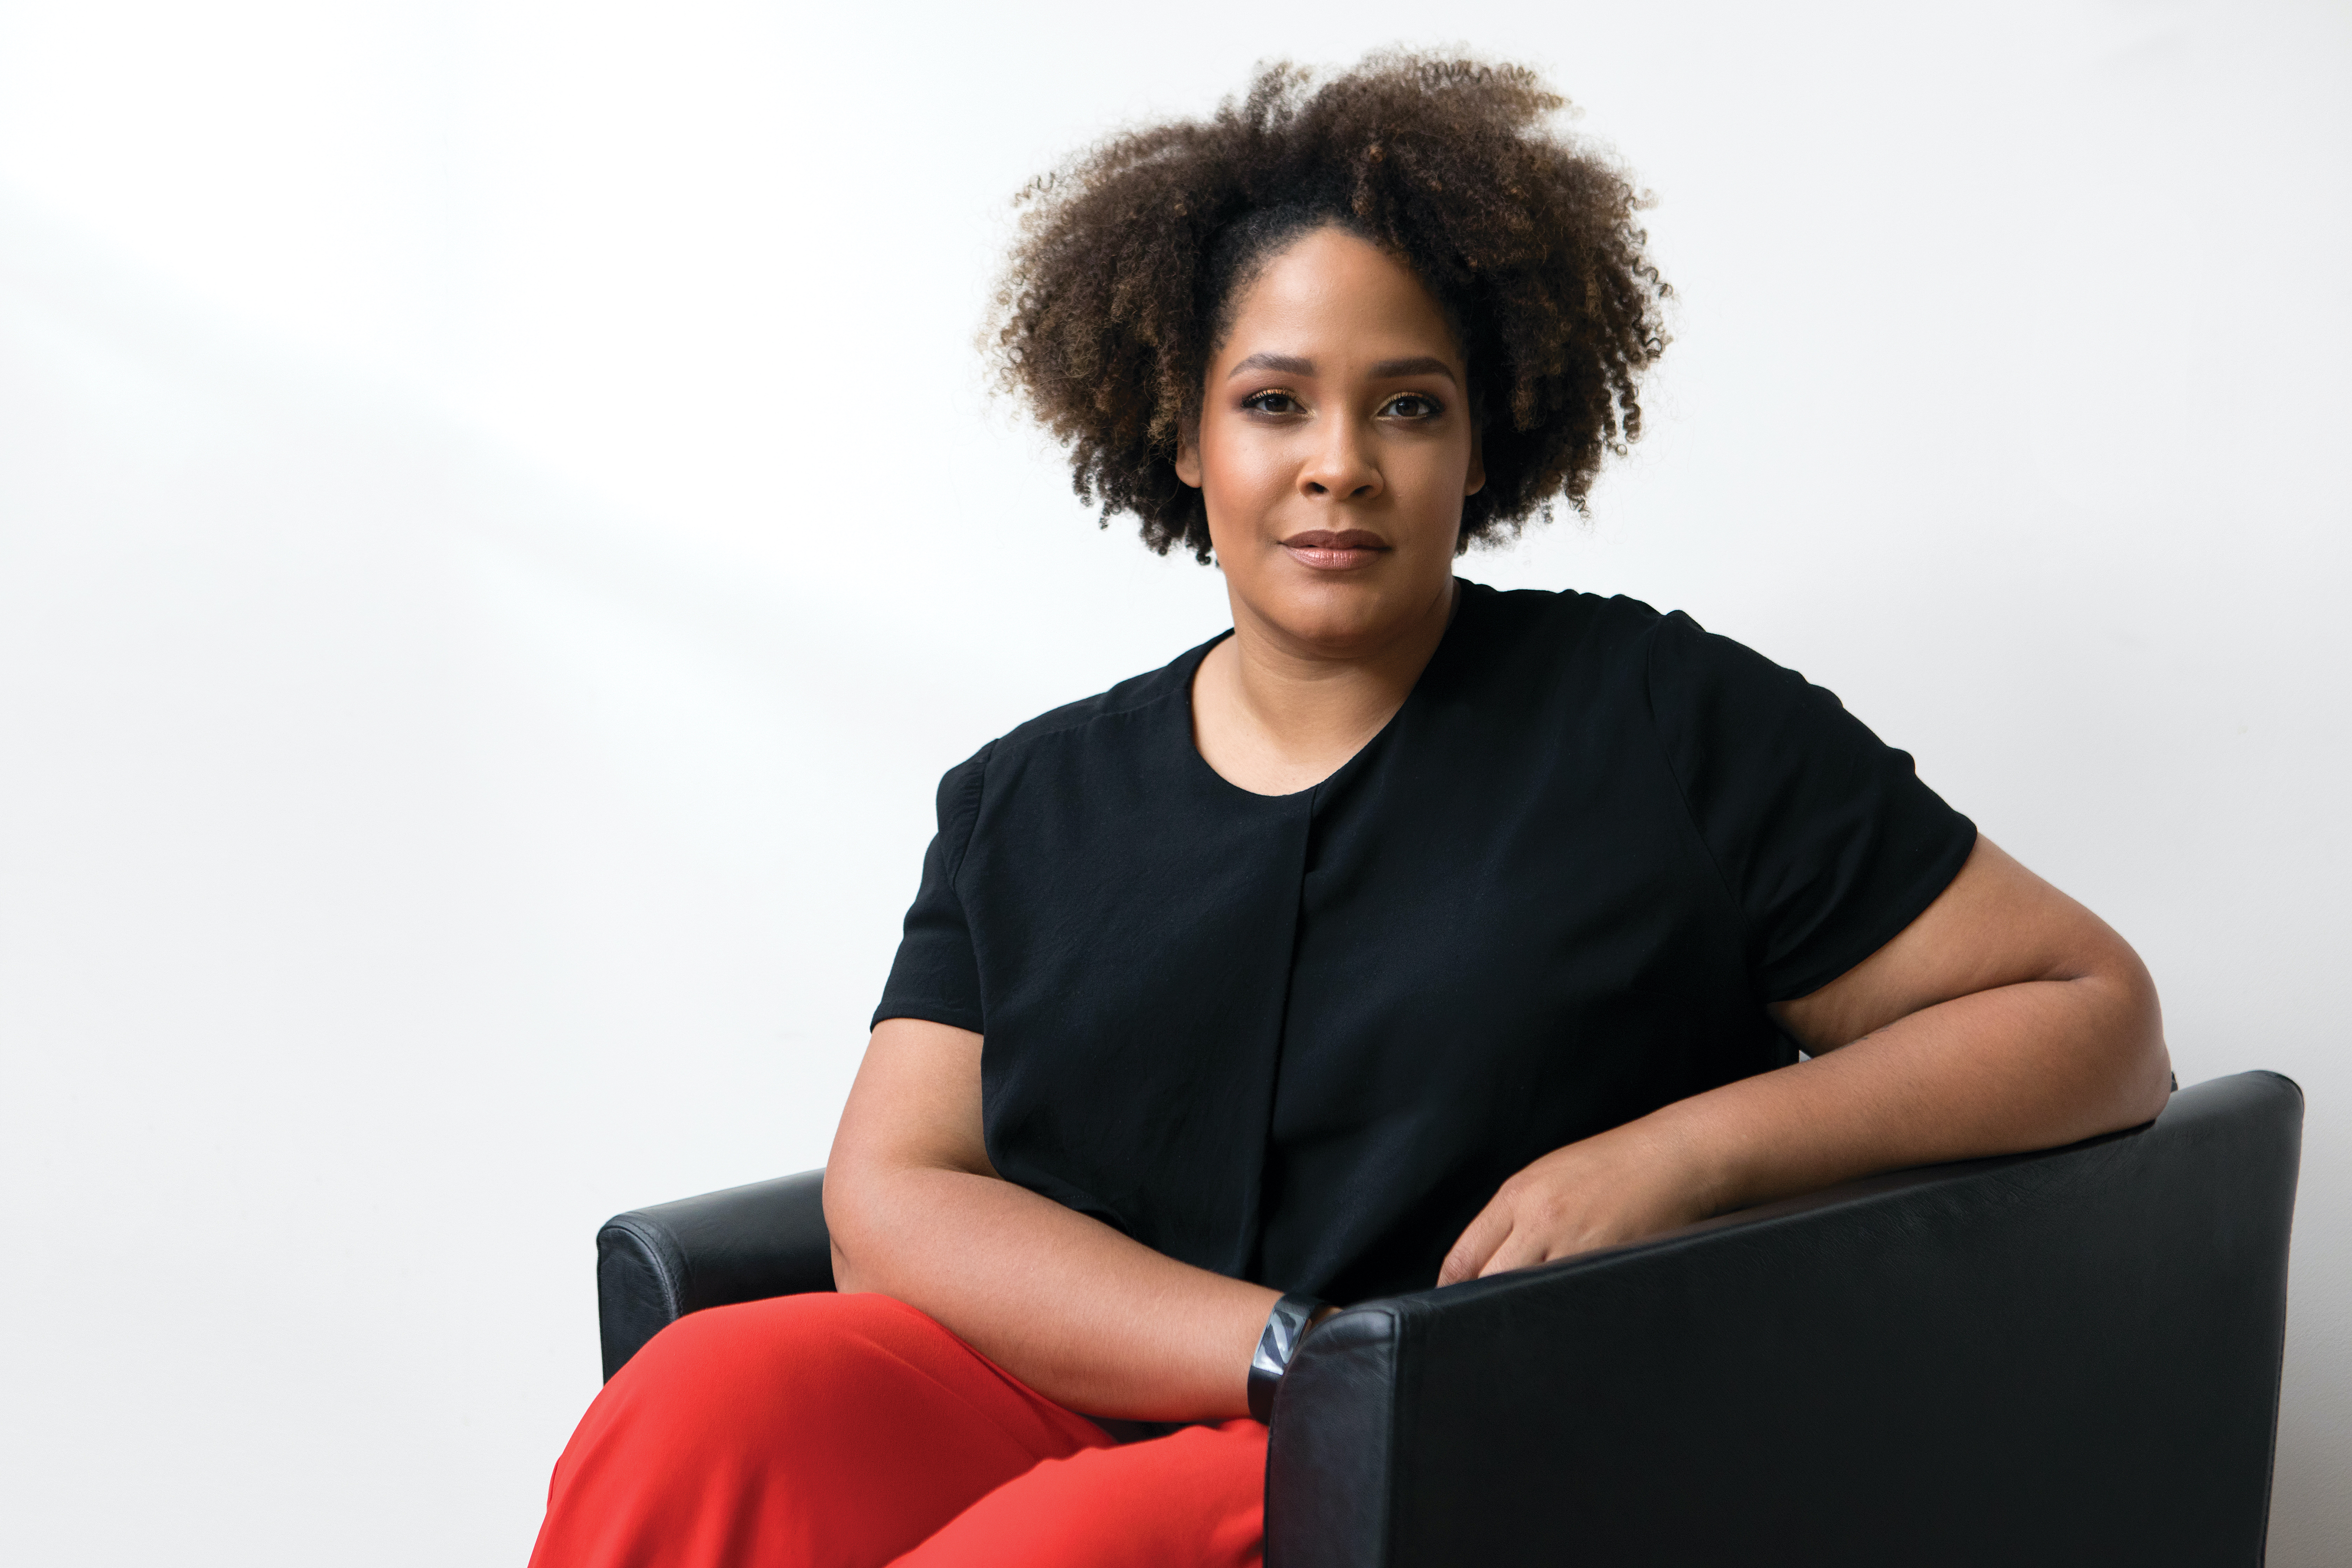 Ijeoma Oluo sits in a black leather chair, wearing a black shirt and red trousers.